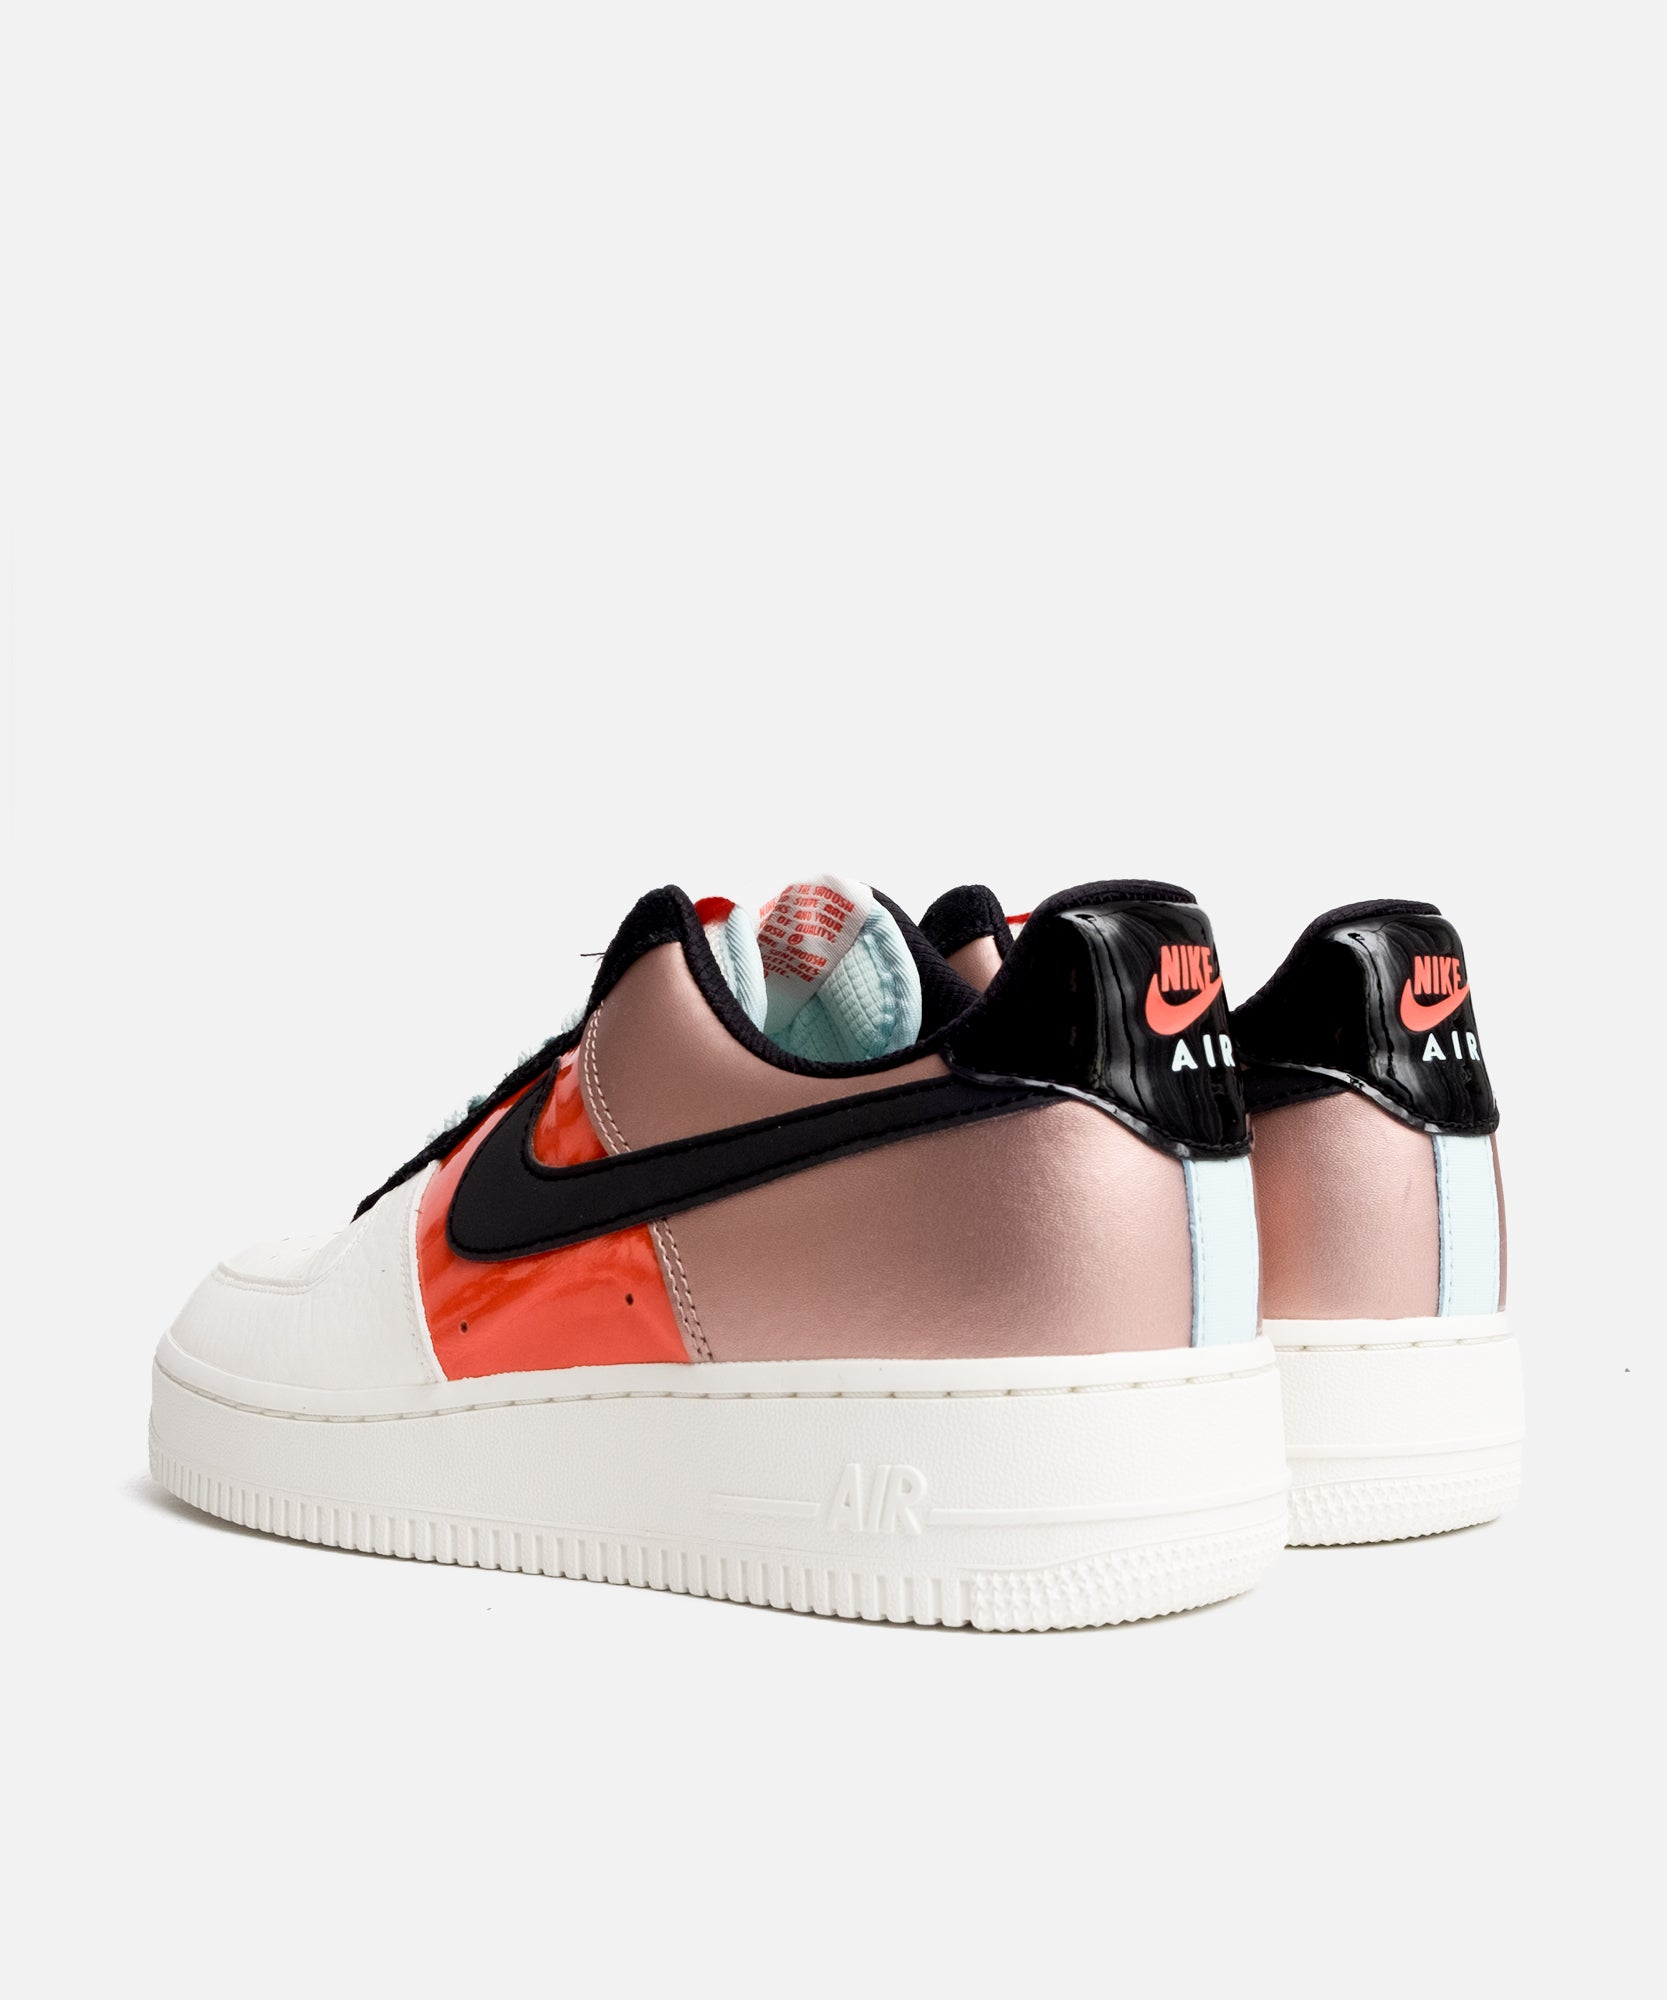 NIKE Air Force 1Lo mtlc redbronzeblack teal tint Low Top